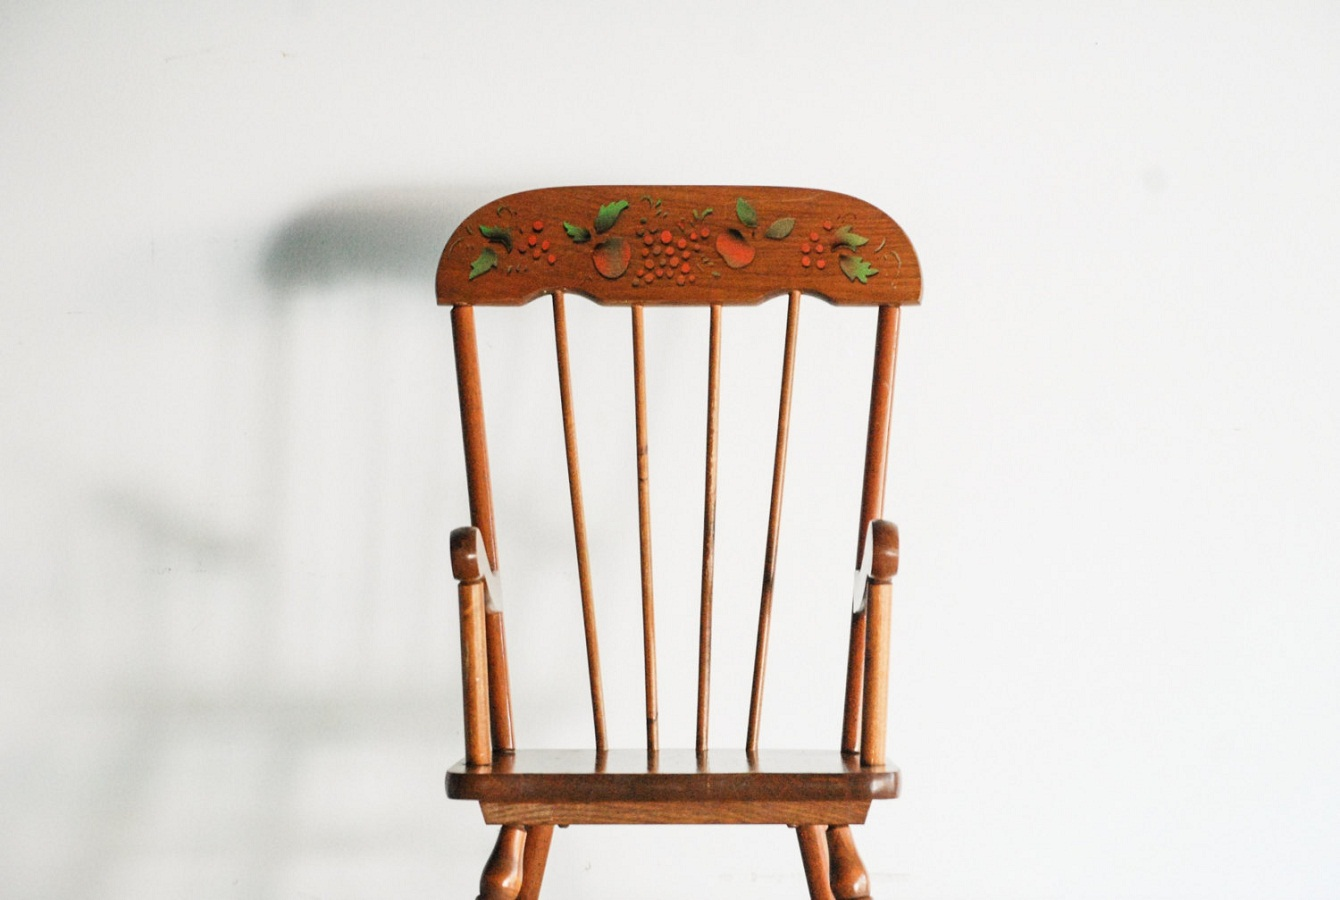 Wooden Childs Rocking Chair